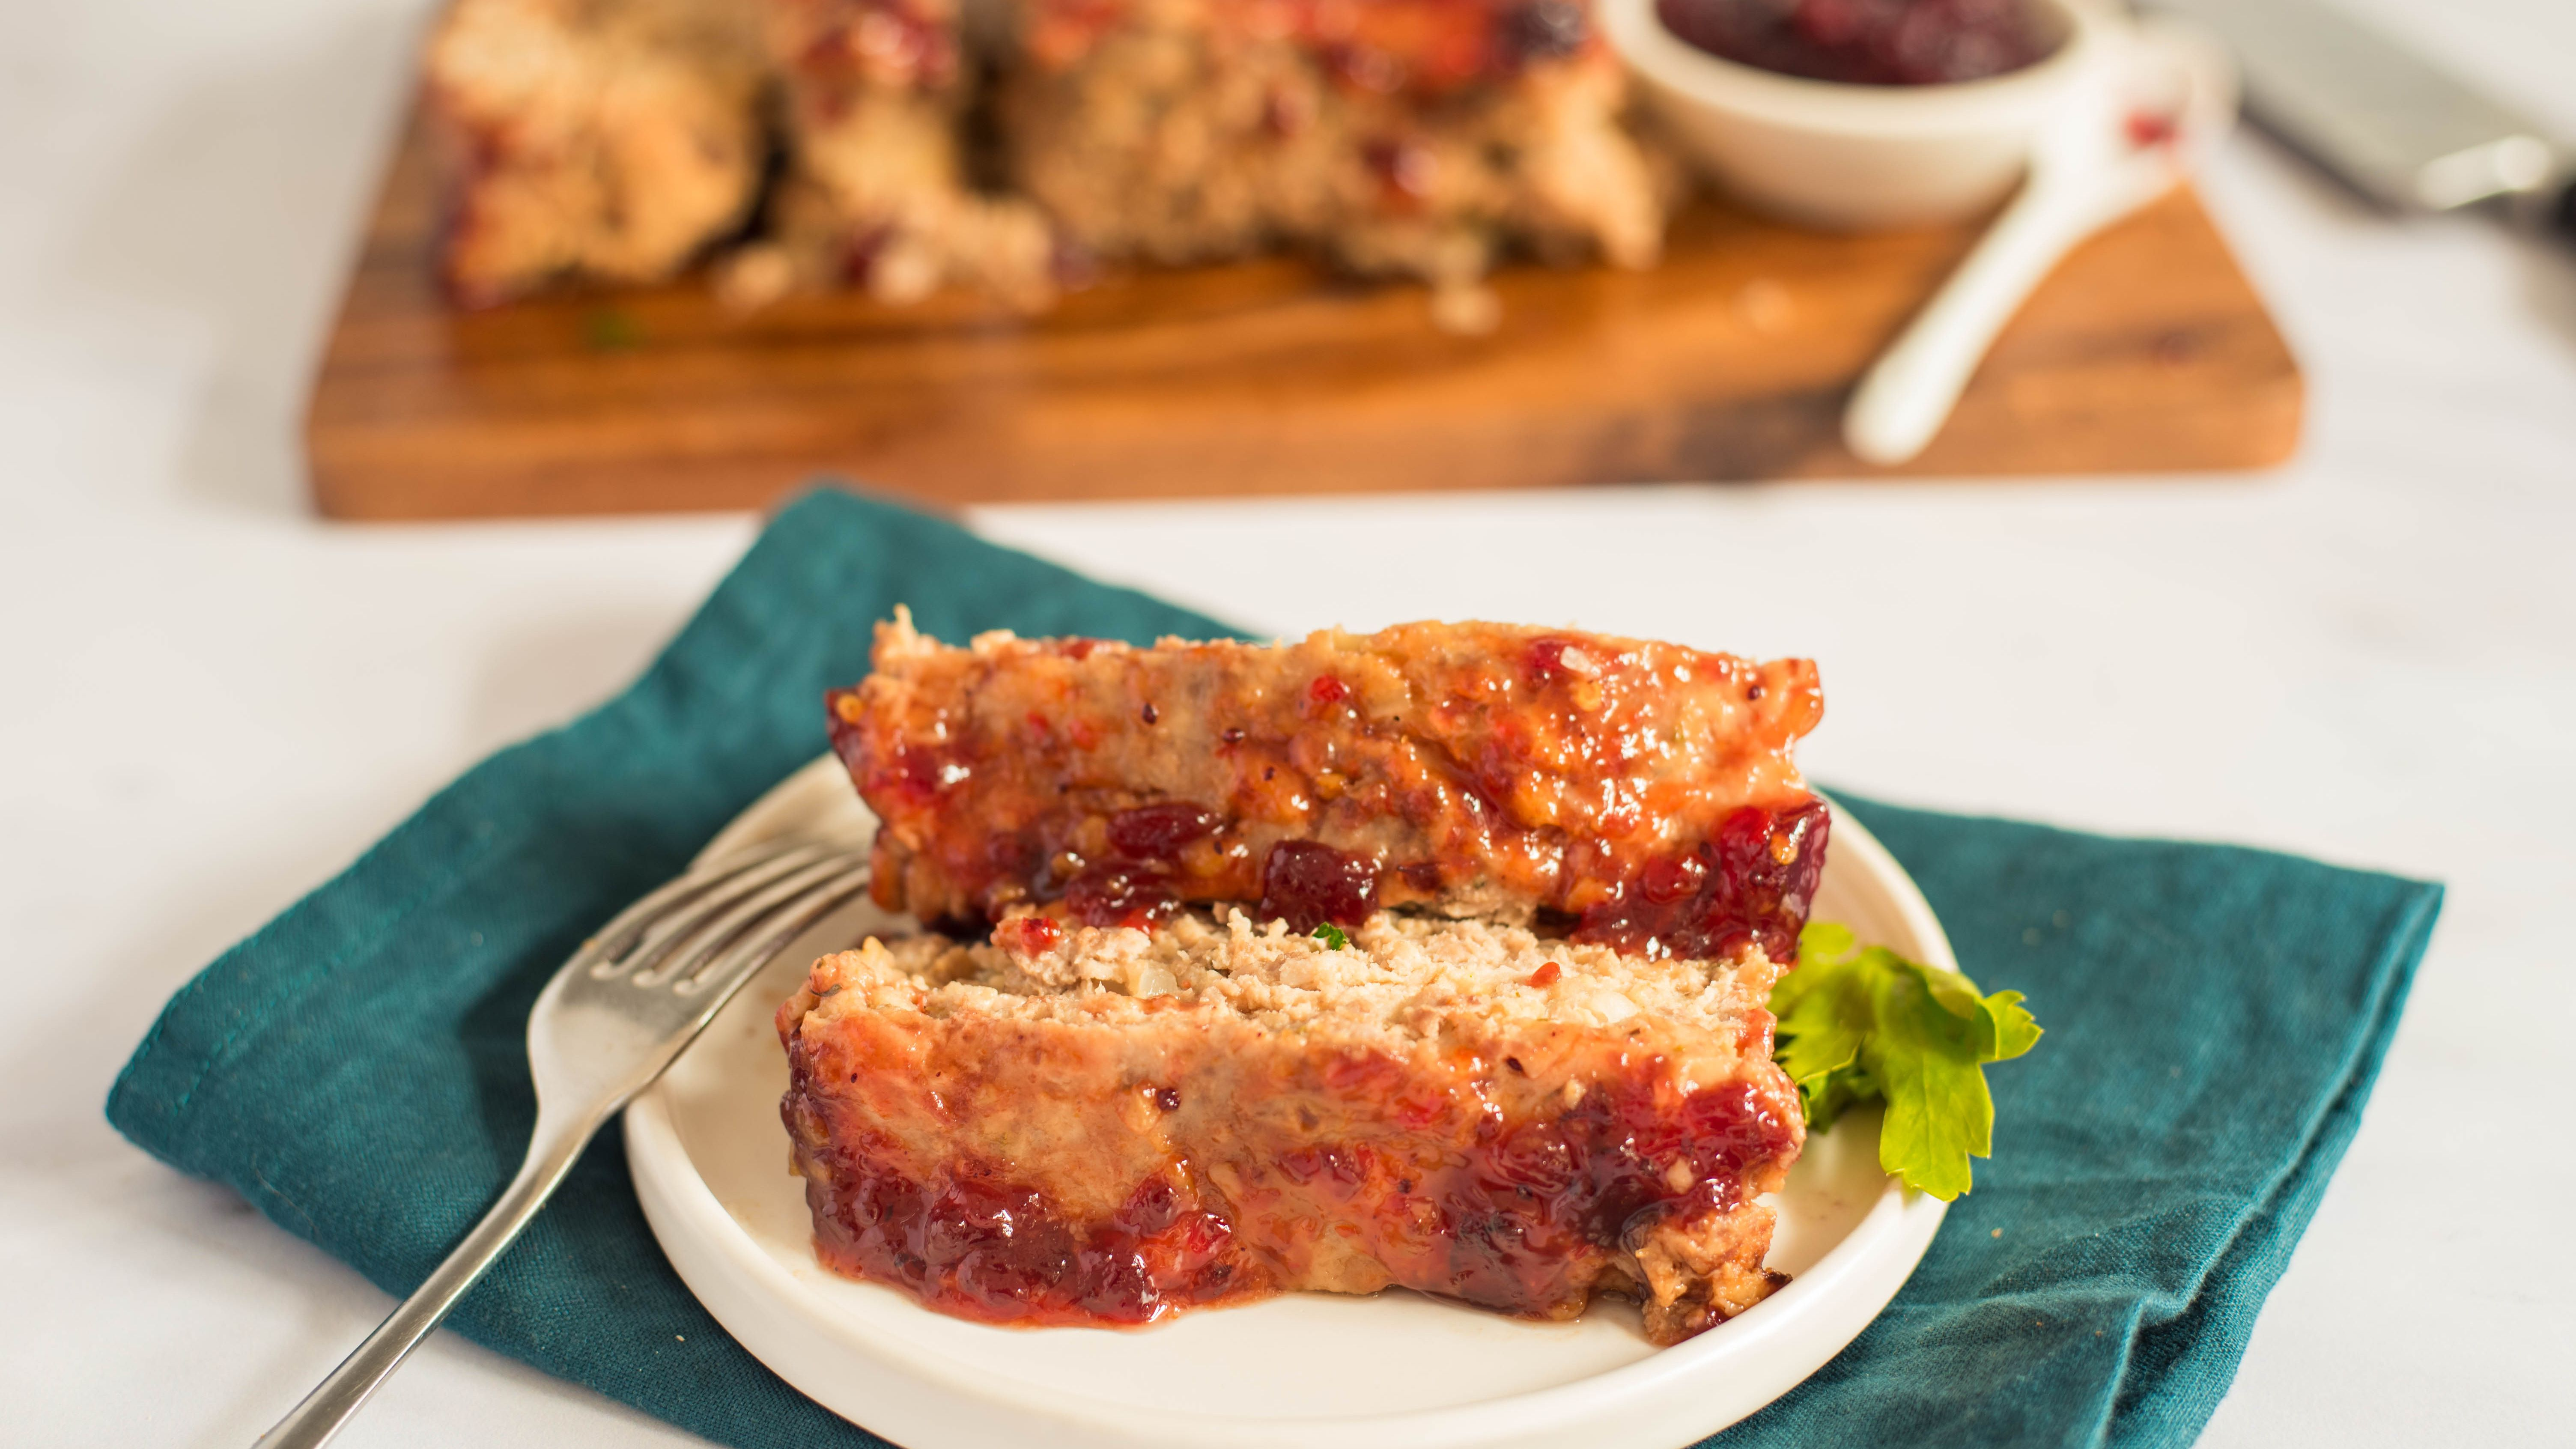 How to Store and Freeze Meatloaf